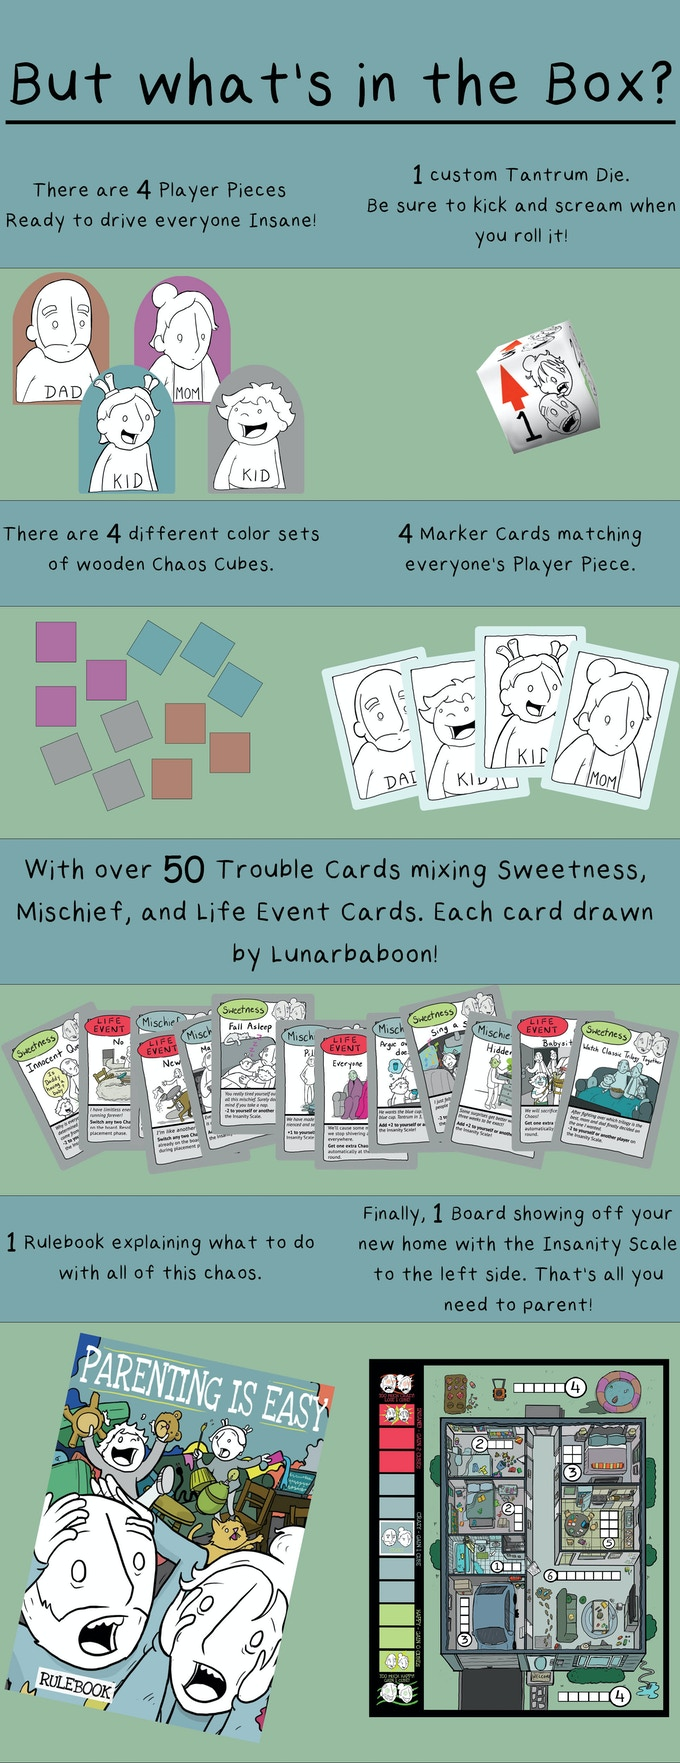 A game for parents, where YOU get to be the kid driving mom and dad completely off the wall! Spread the most chaos and avoid making your parents happy.